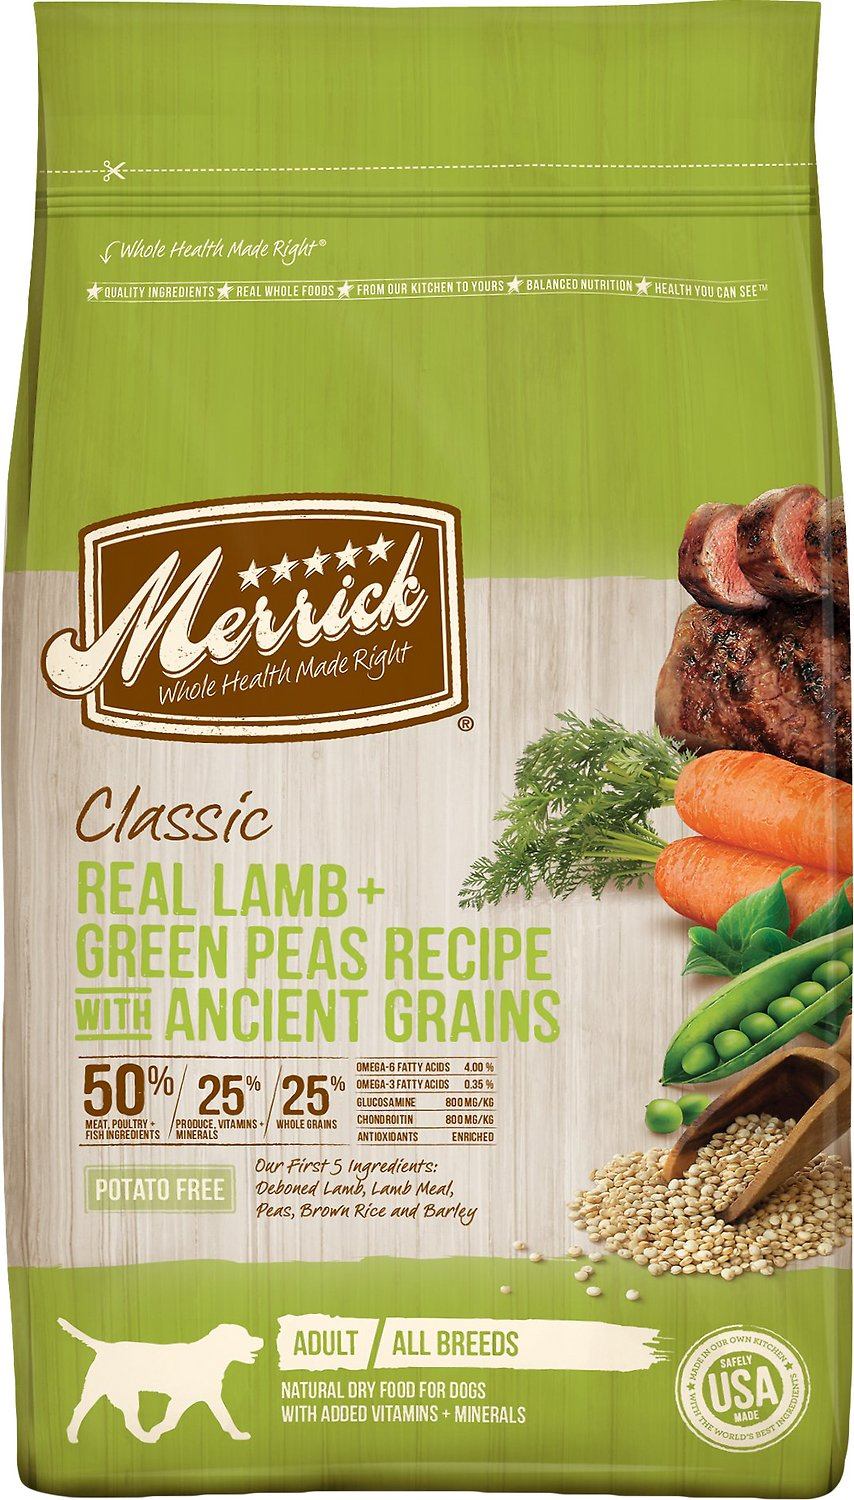 Merrick Classic Real Lamb + Green Peas Recipe with Ancient Grains Adult Dry Dog Food Image